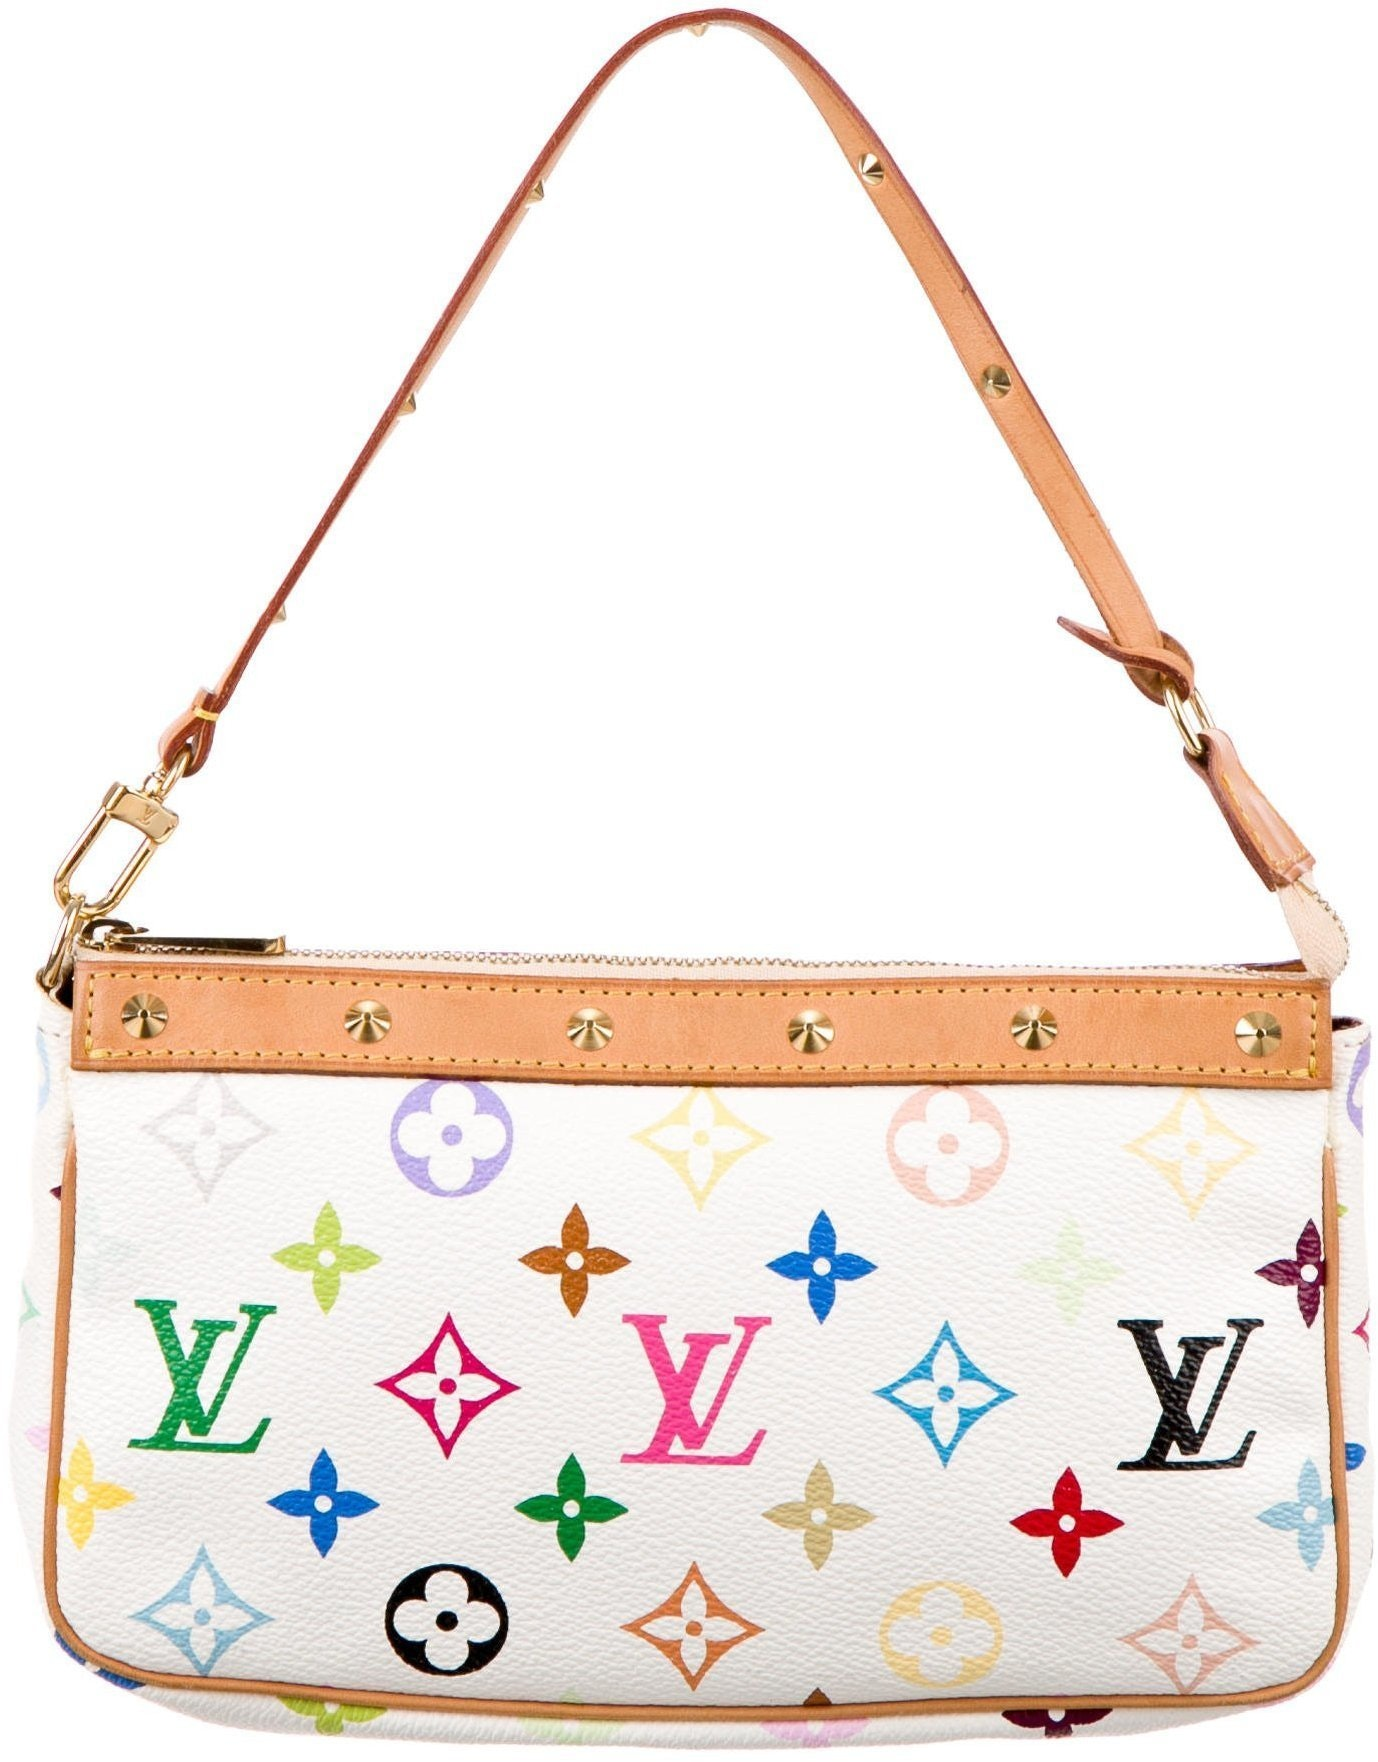 Louis Vuitton Pochette Accessoires Monogram Multicolore White